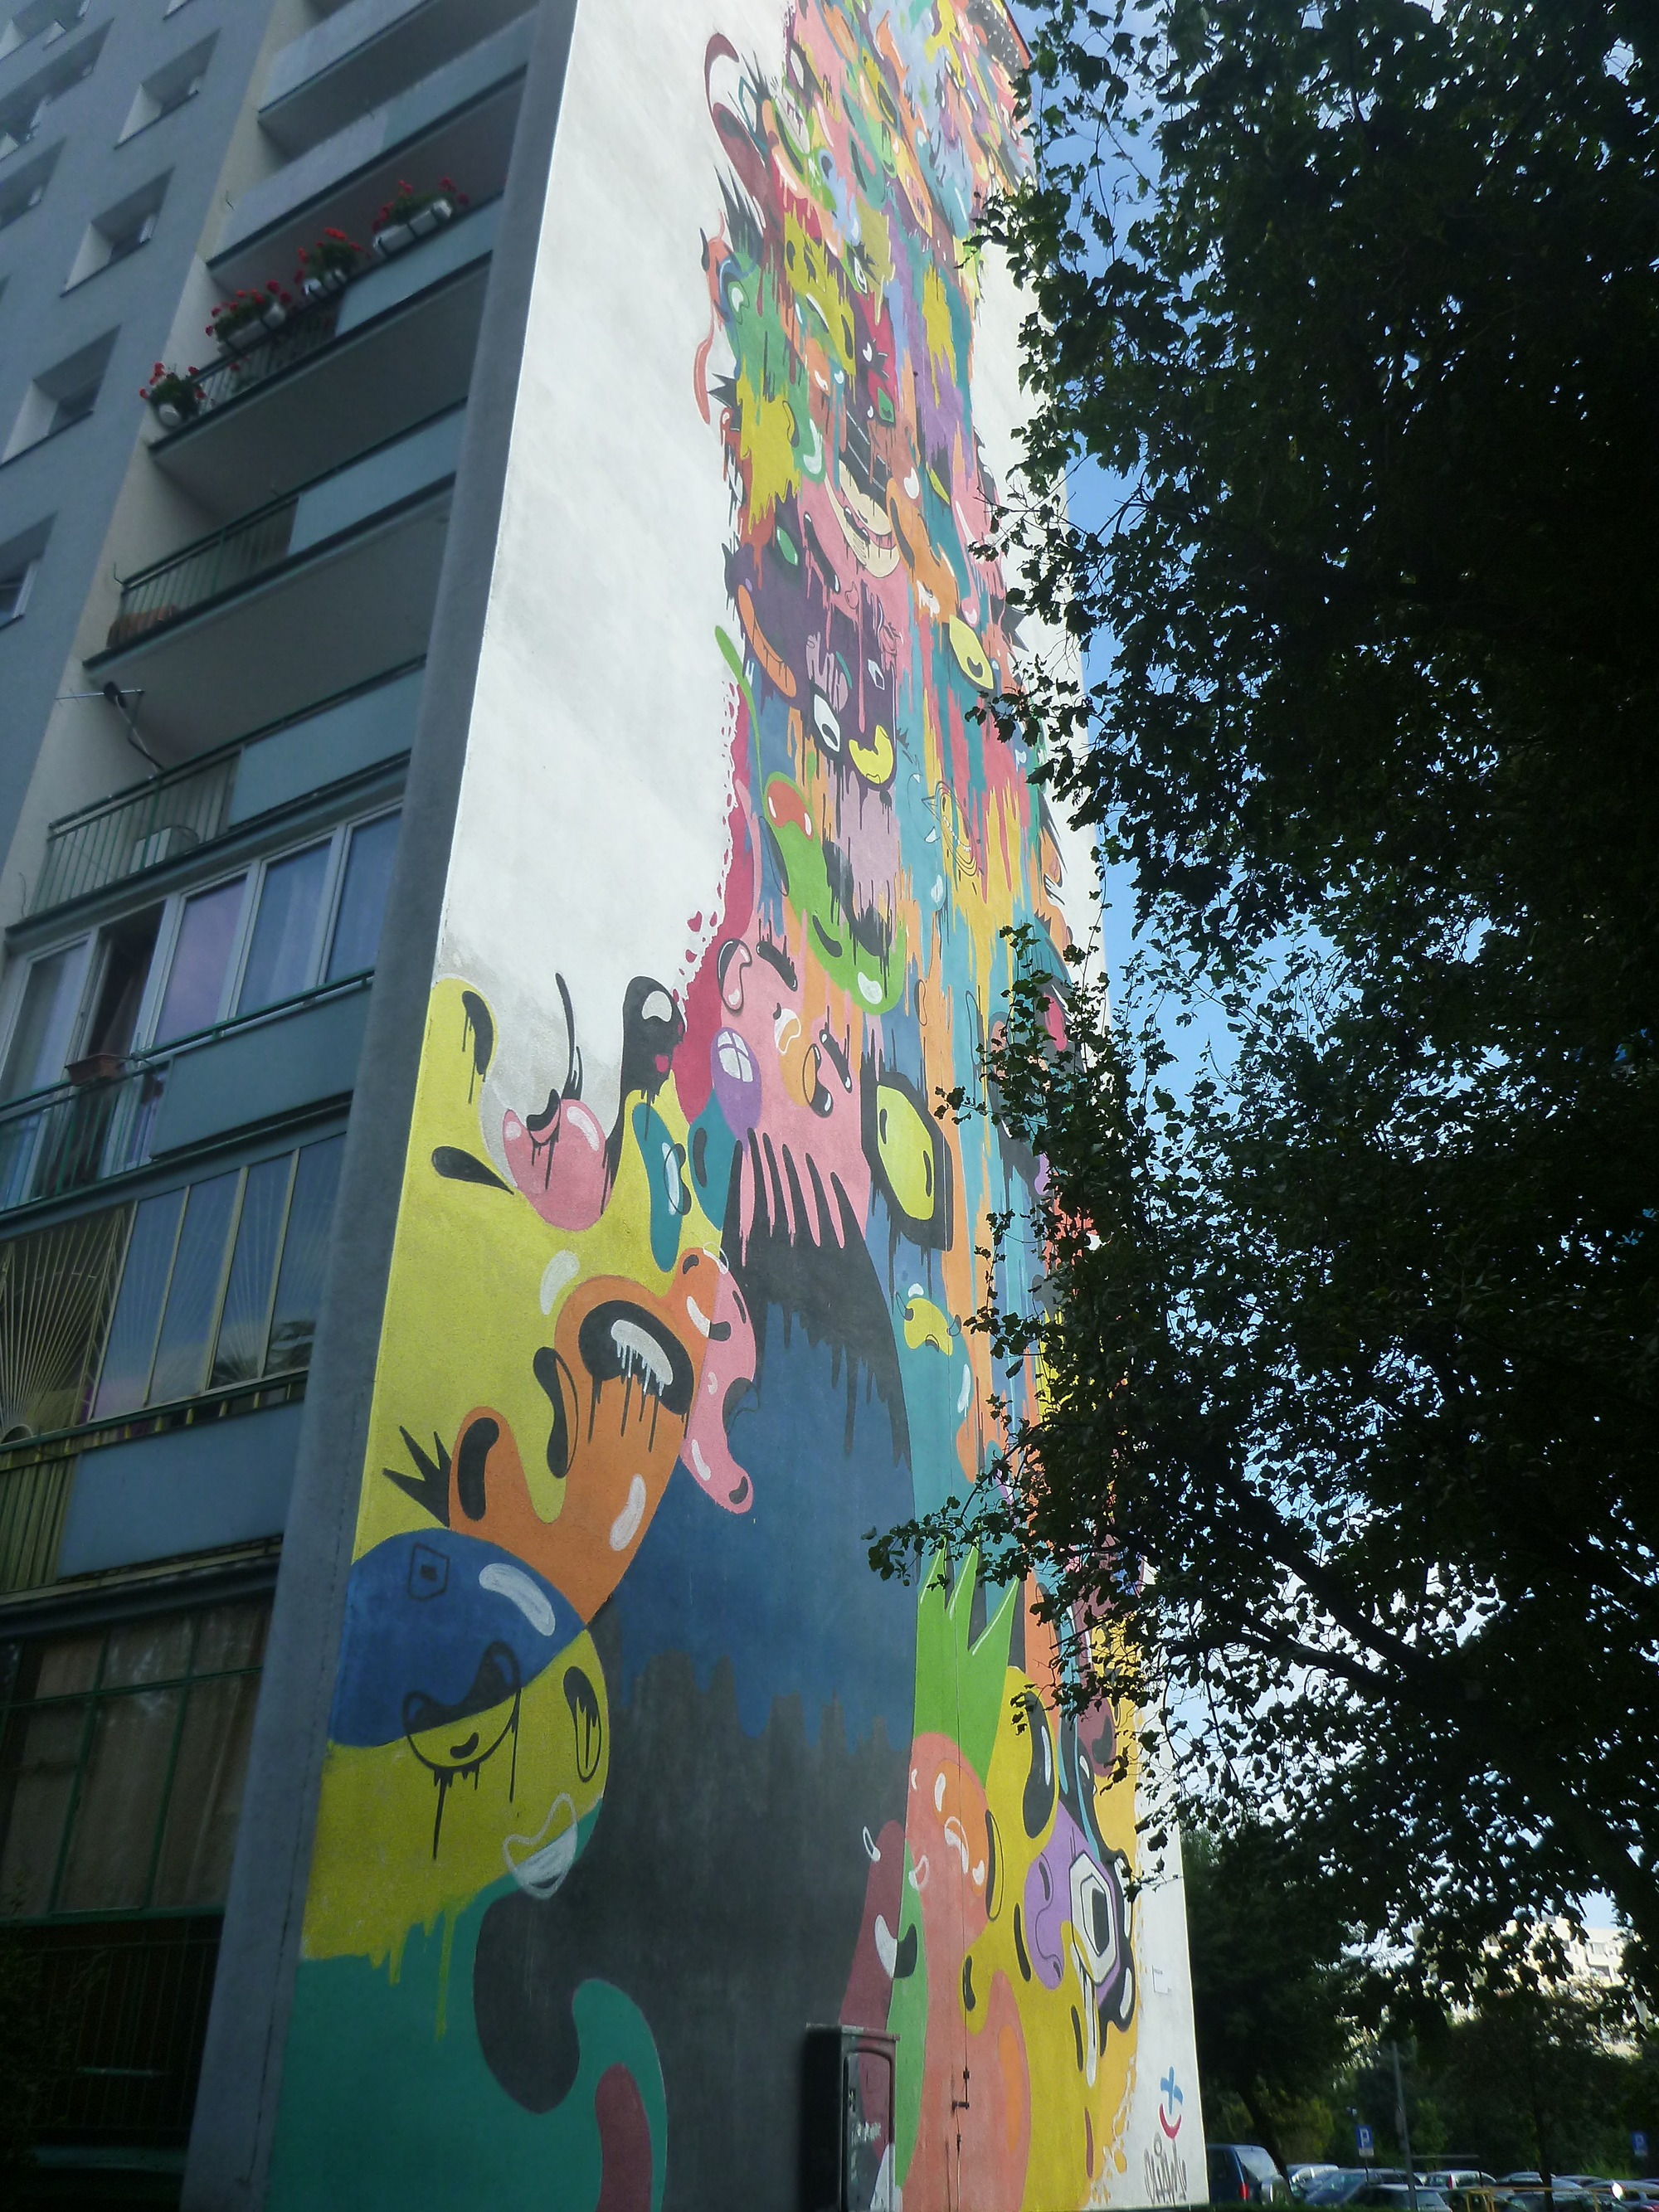 touring the artistic wall murals in the district of zaspa gdańsk